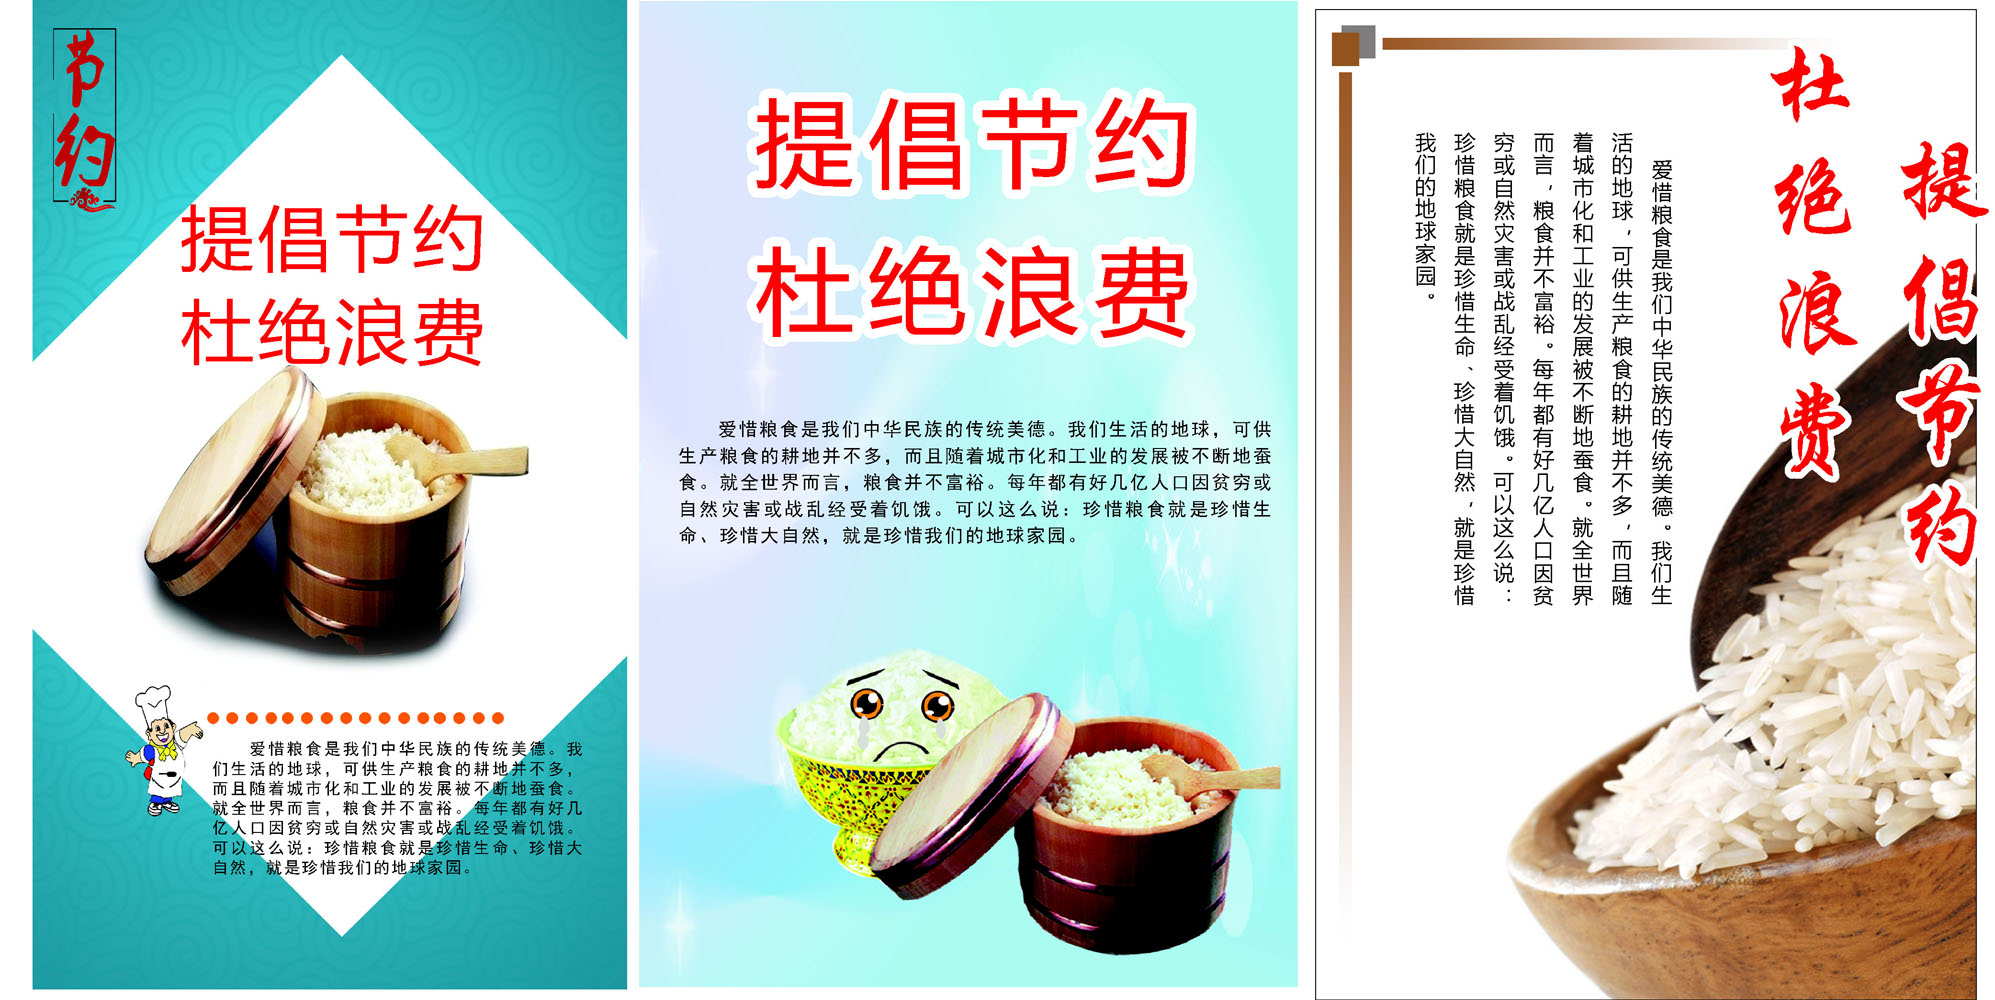 662 posters printed material panels 543 promotion of savings to eliminate wasteful posters